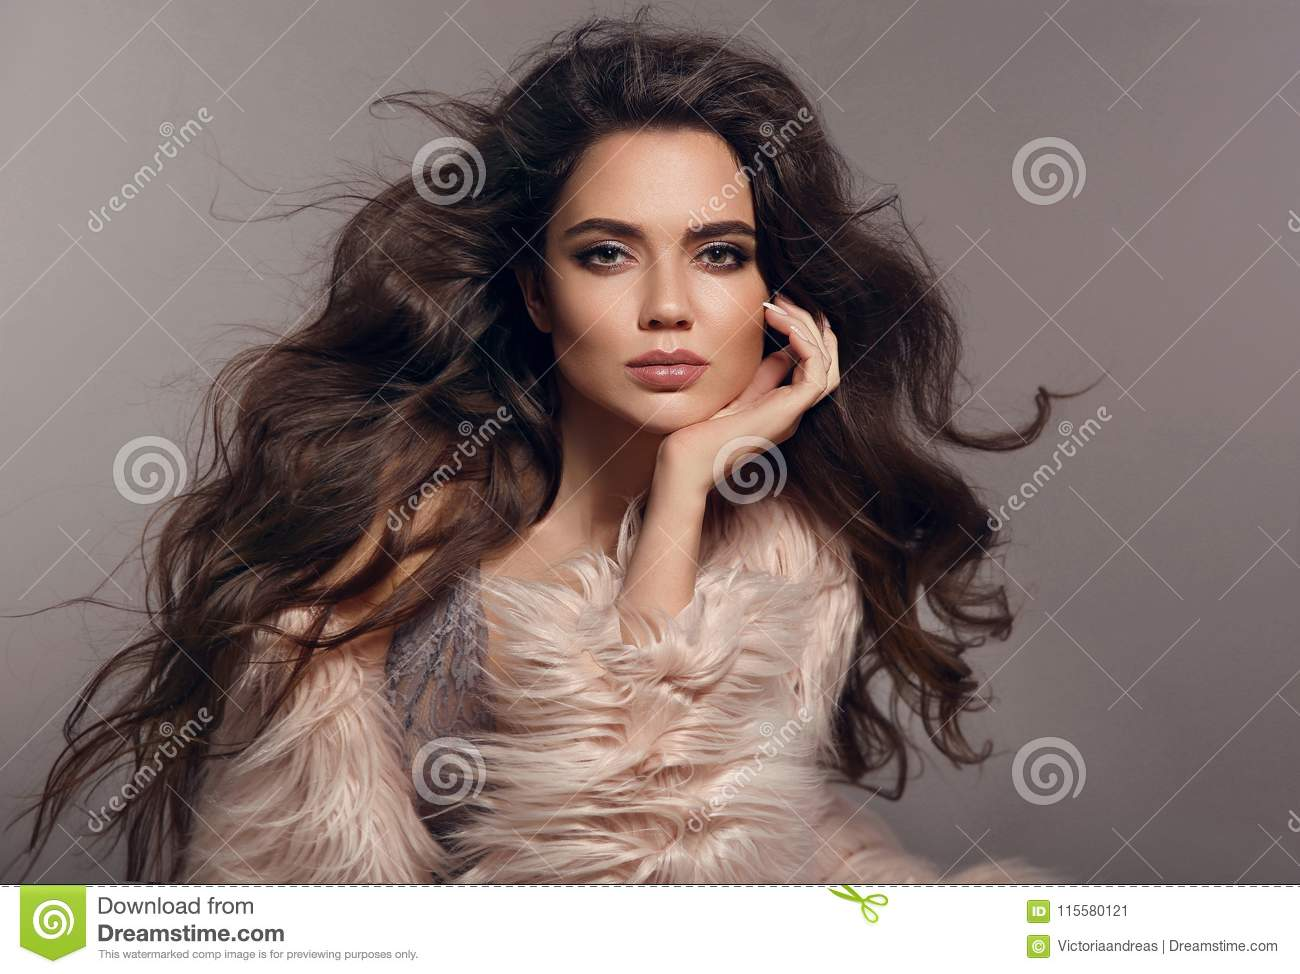 ff5c409b36 Fashion Studio Photo Of Gorgeous Brunette Woman With Long H Stock ...